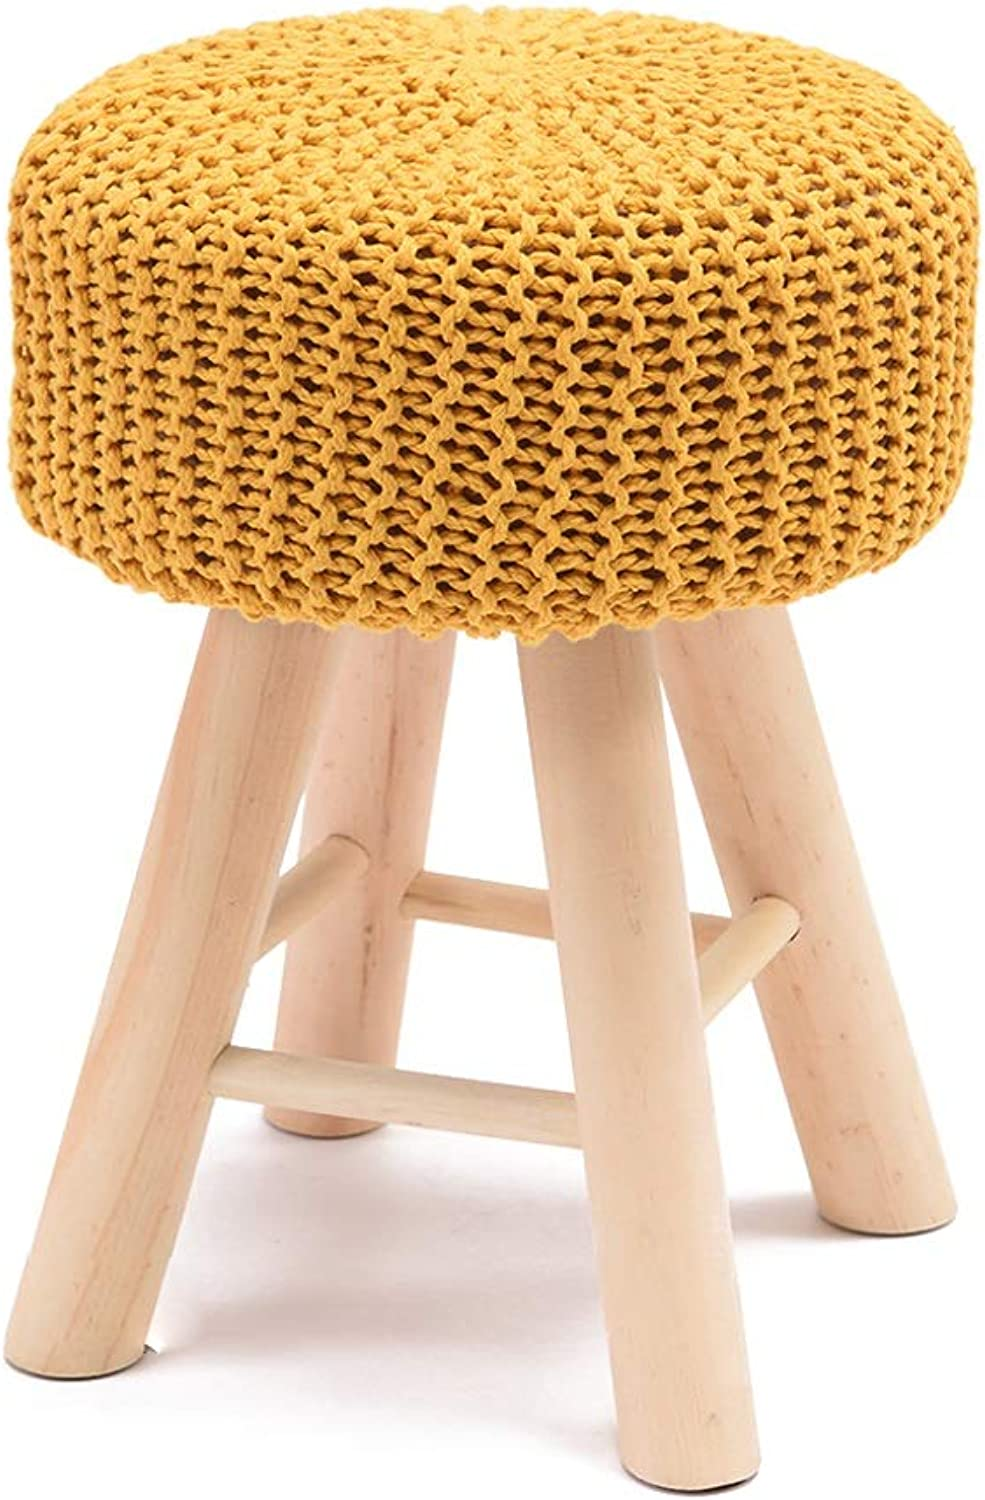 LSLMCS Upholstered Footstool - Chair Stool Set 4 Legs AndHandmade Knitted Woven Cotton Cover (5 colors) (color   A)